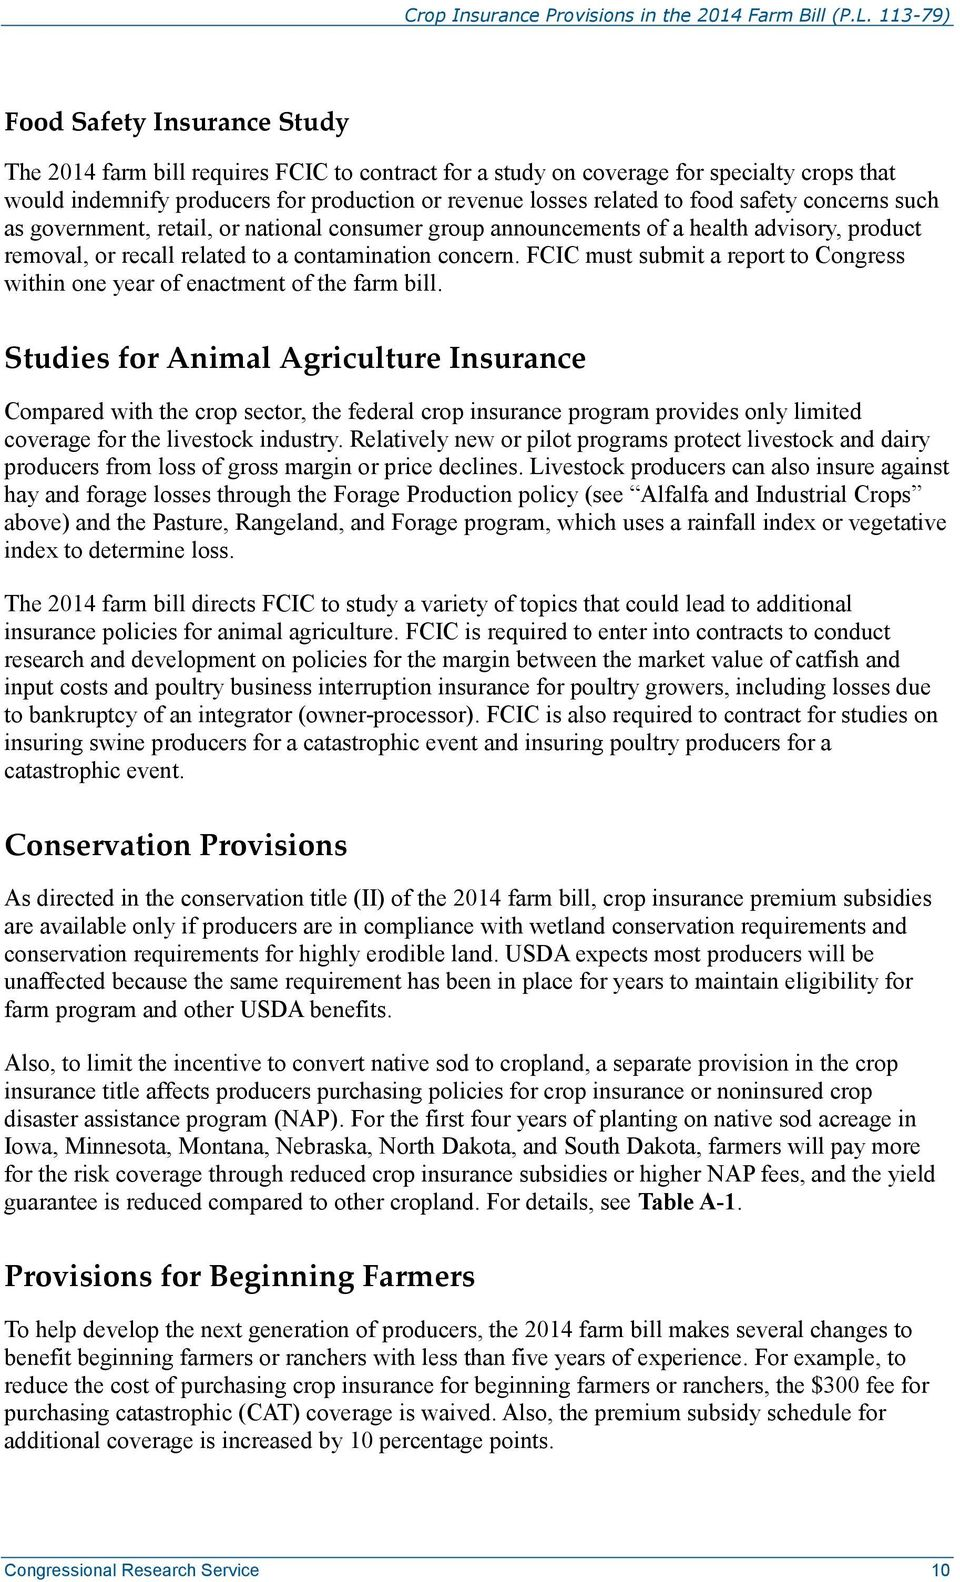 FCIC must submit a report to Congress within one year of enactment of the farm bill.